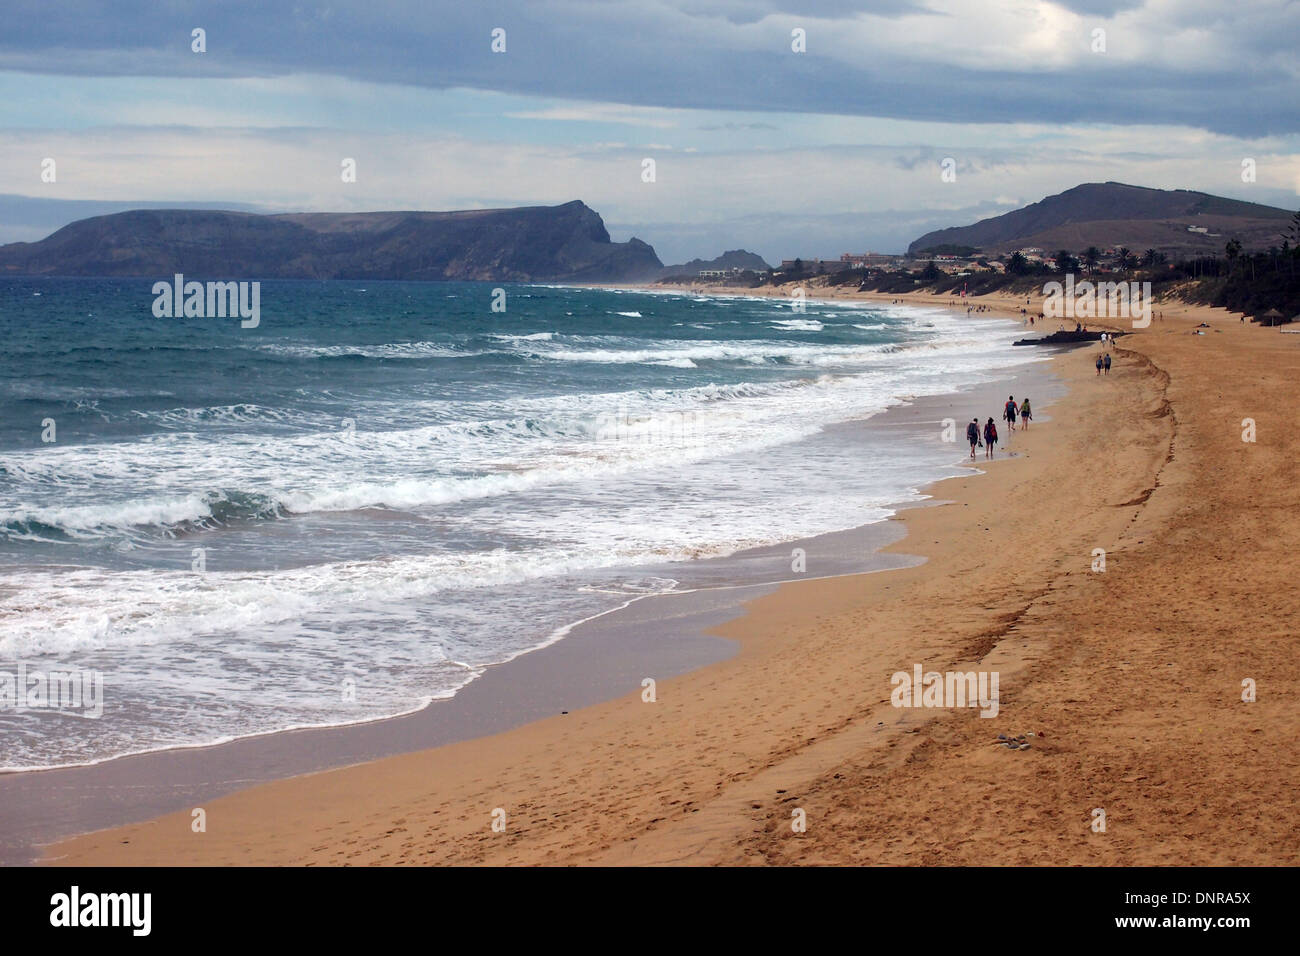 The famous beach on the Atlantic Island of Porto Santo near Madeira - Stock Image